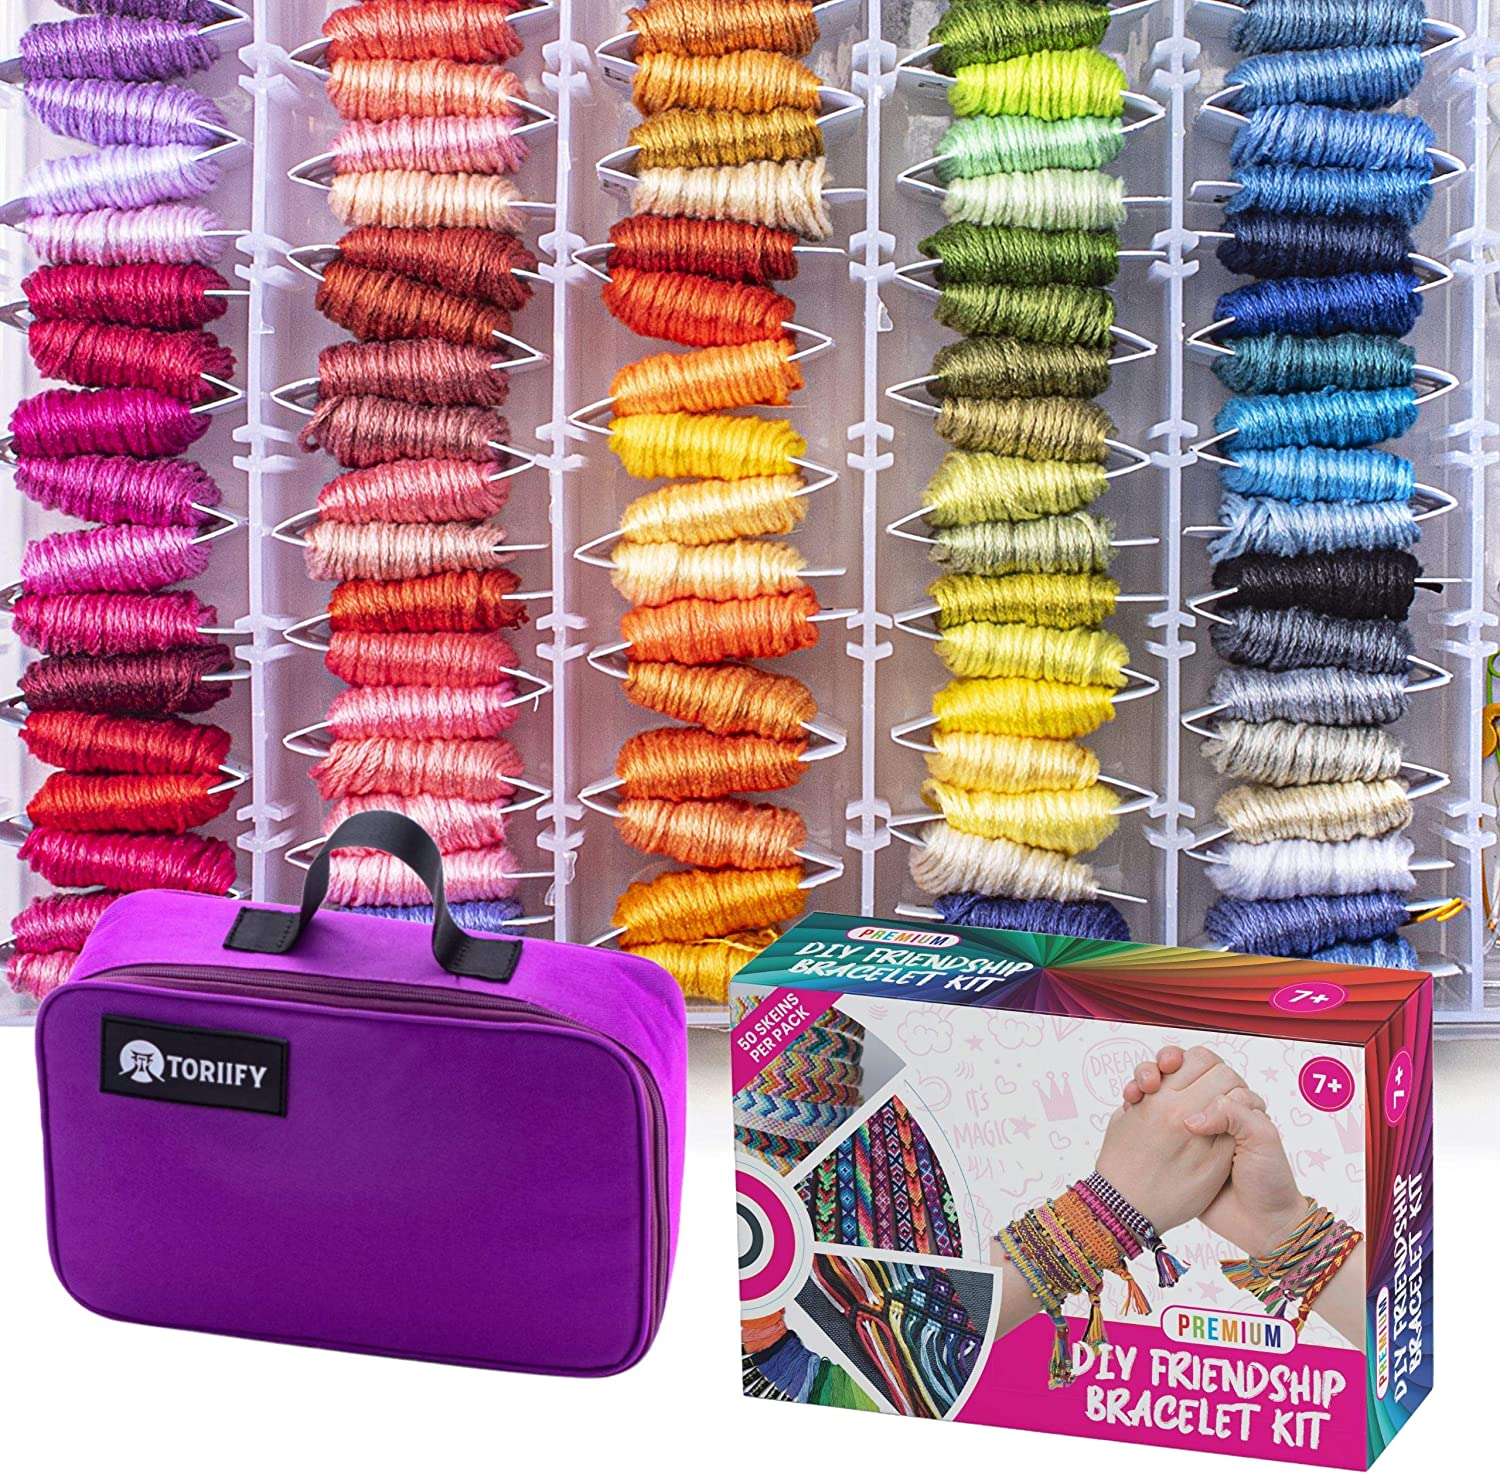 Premium Embroidery Floss with 100 Vibrant Colors Corresponding to DMC Yarn Color Chart,Durable Cross Stitch Thread Kit with Storage Box /& an Elegant Carrying Bag Toriify Friendship Bracelet String